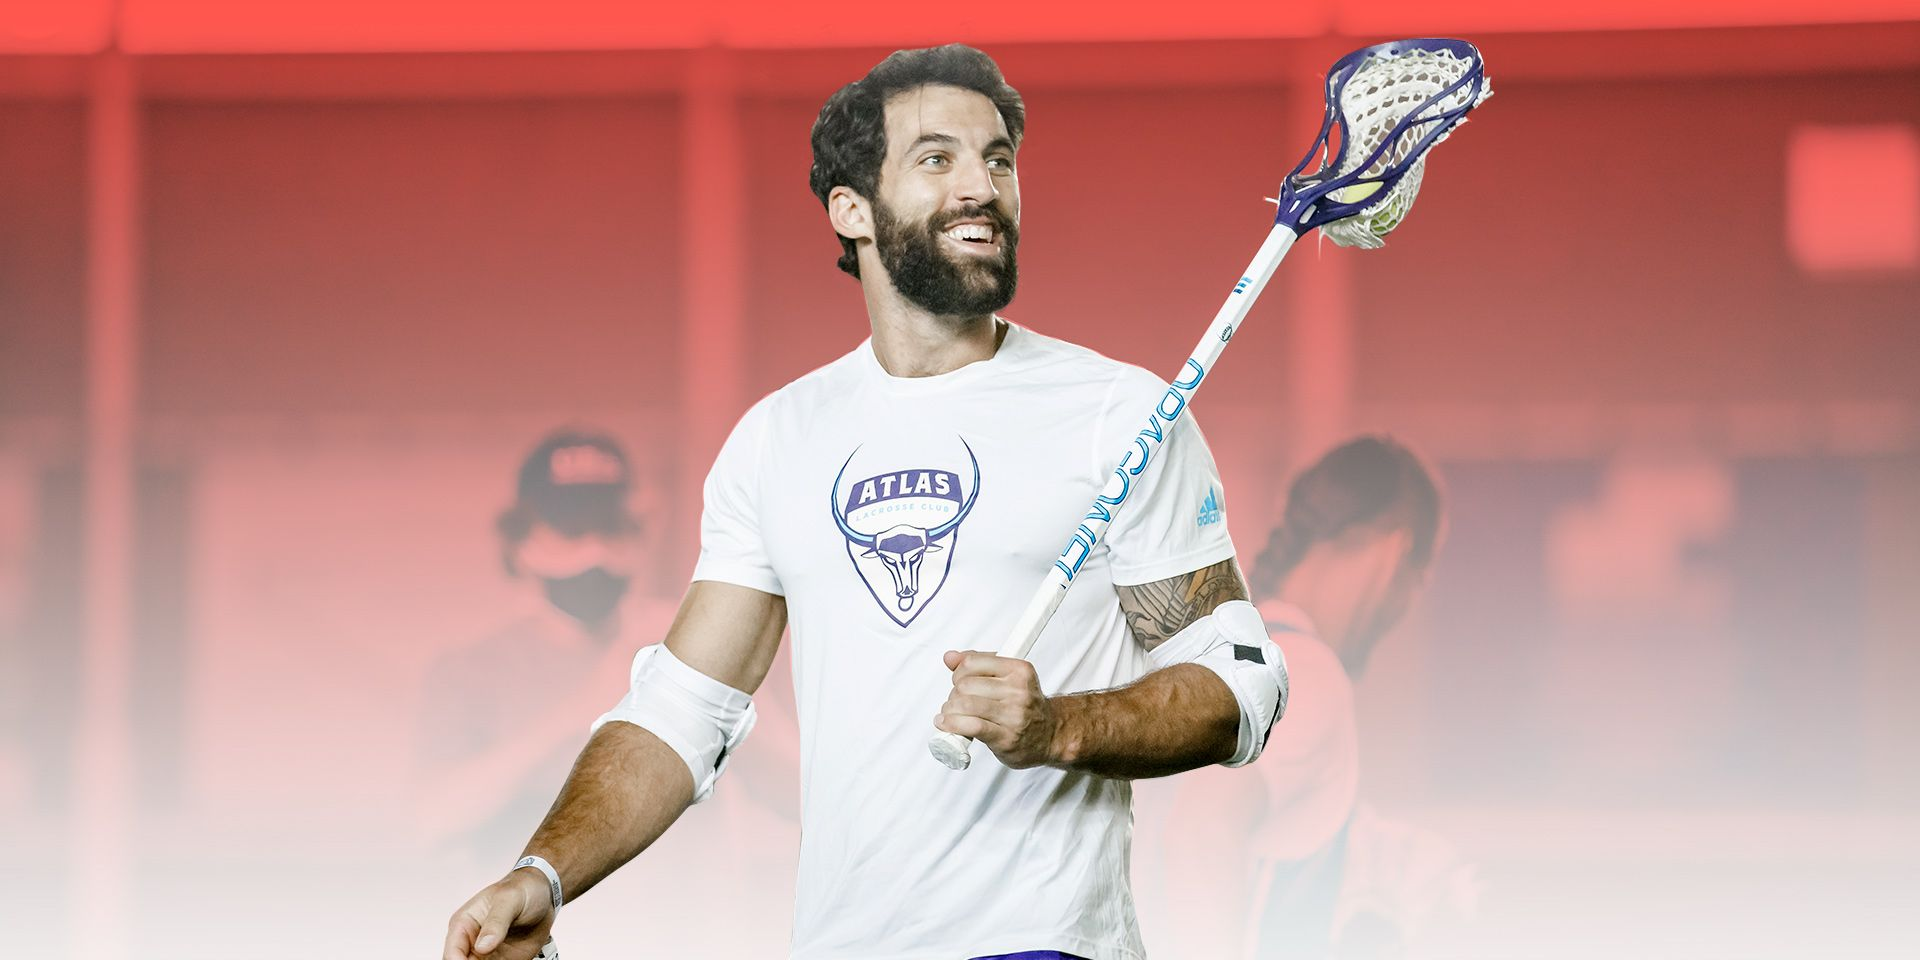 Paul Rabil's Future Hinges on This Moment